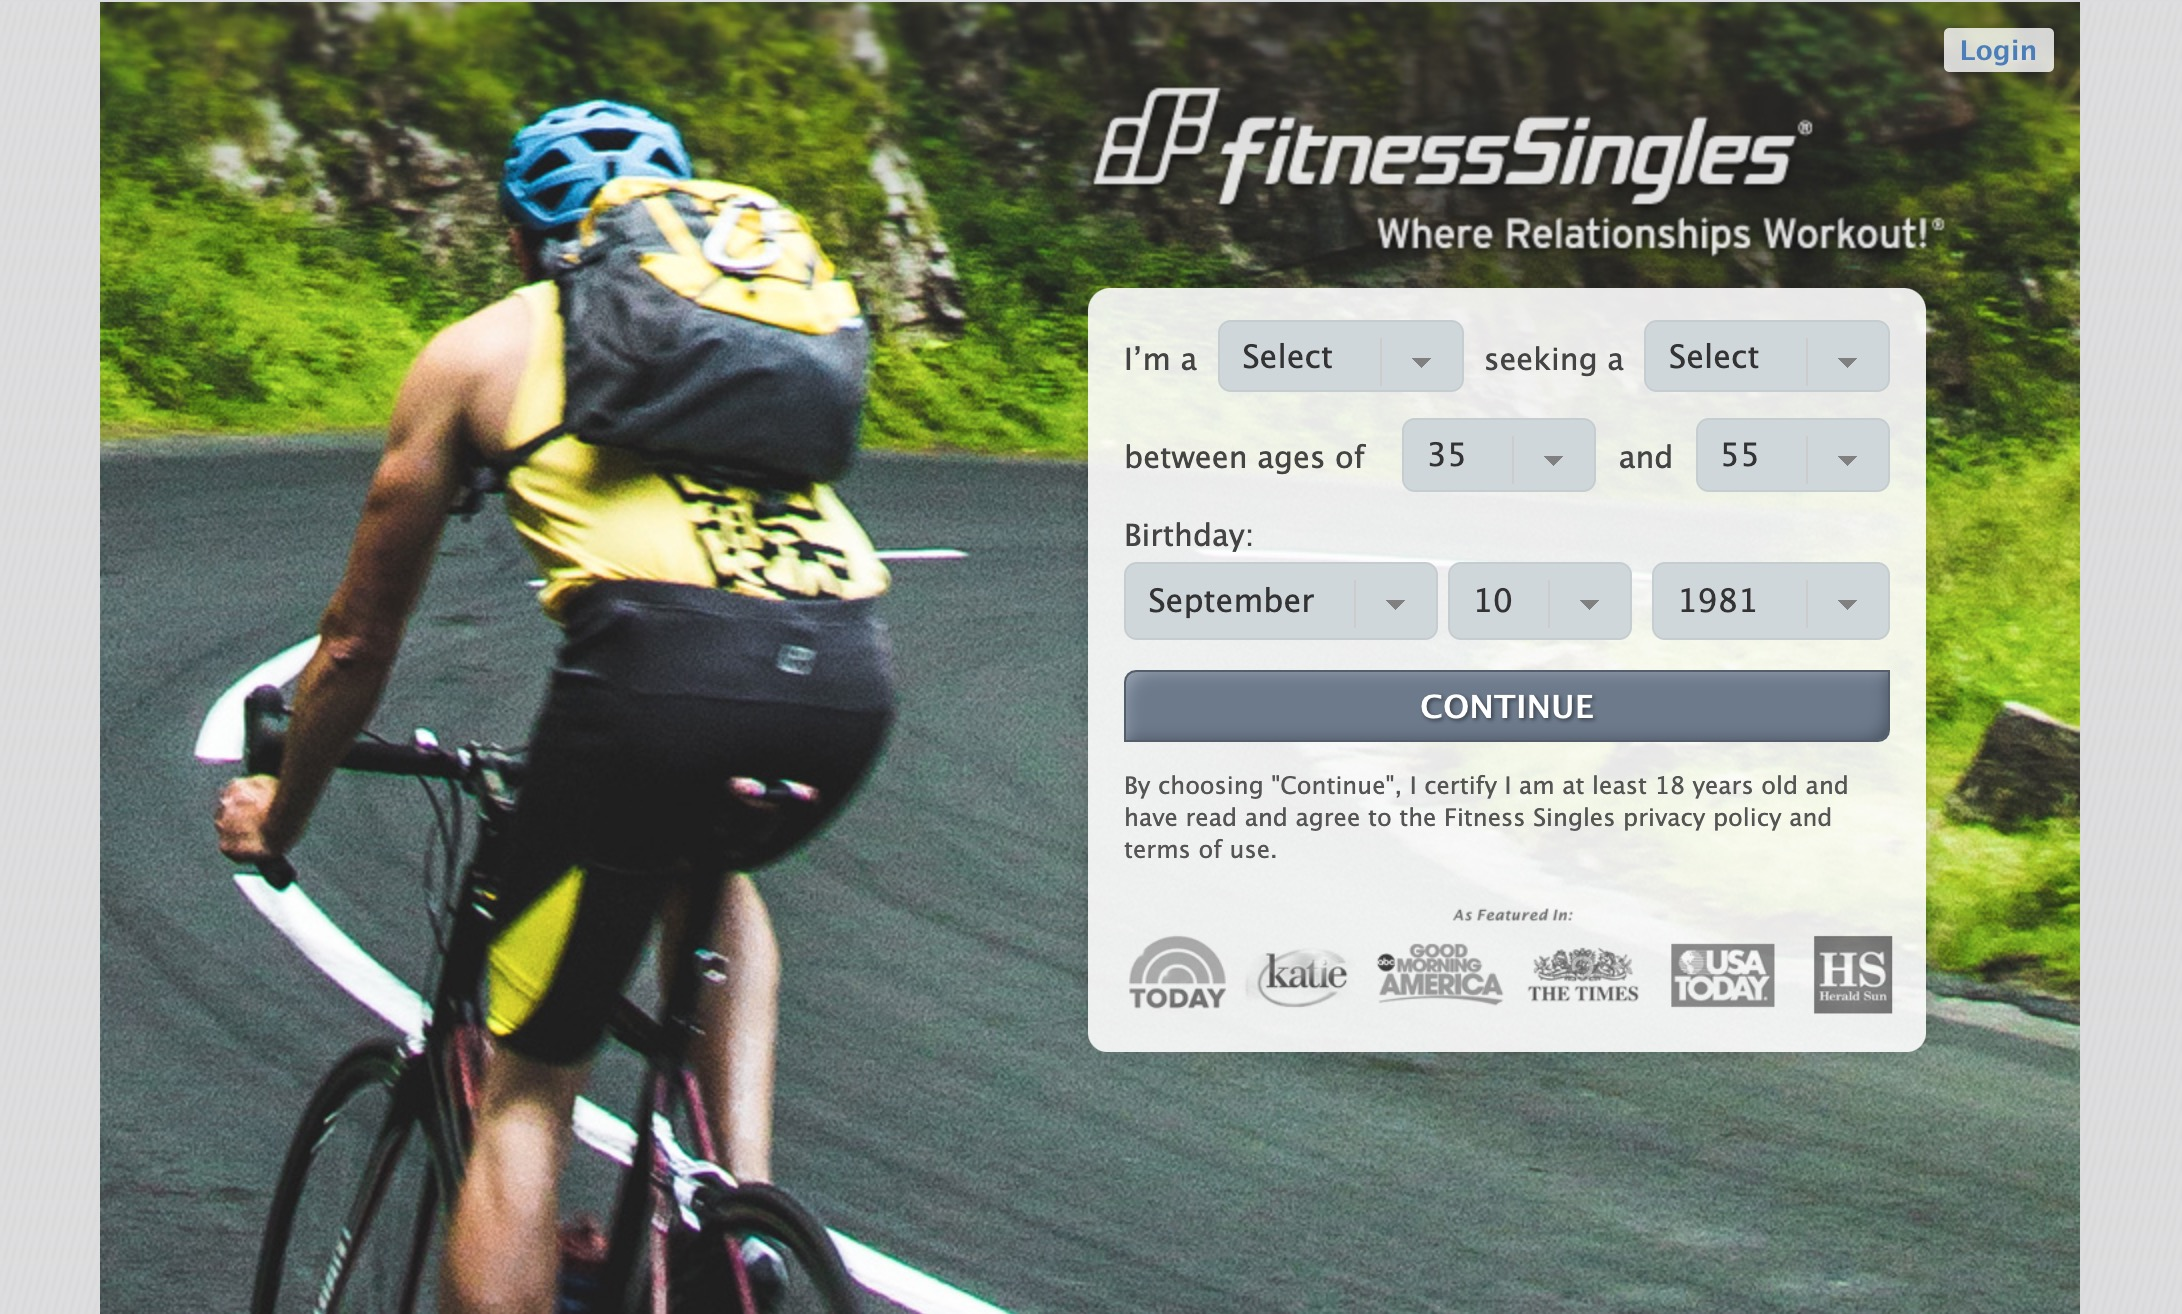 fitness singles main page